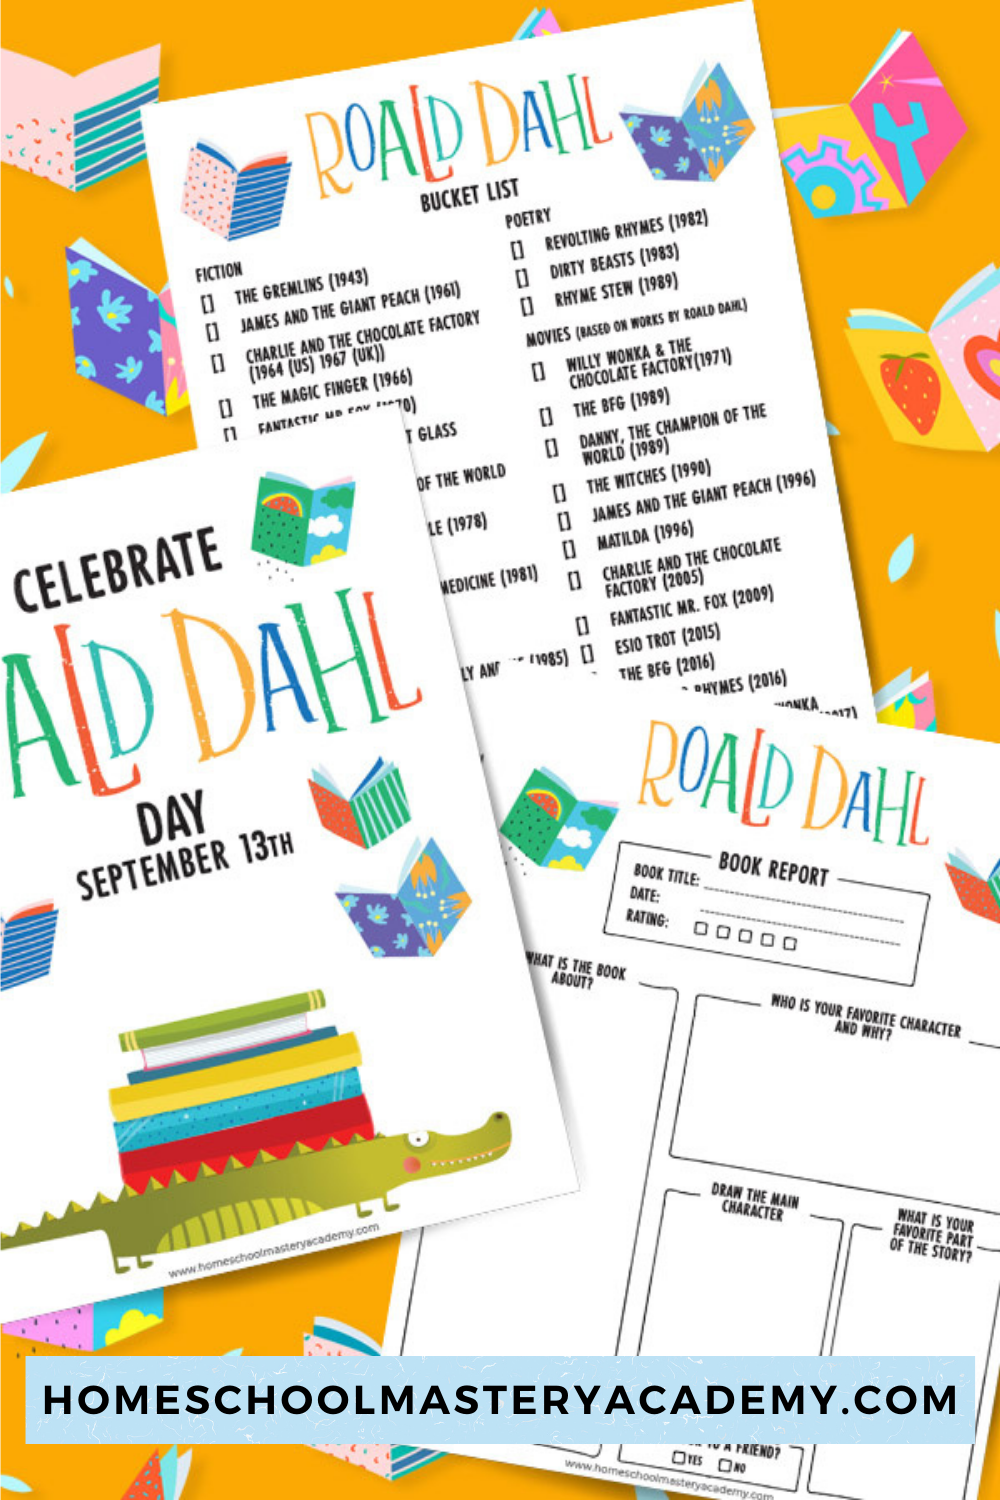 September 13th is Roald Dahl Day! So many reasons to celebrate such incredible literature, poetry, and movies that children have come to know and love. For that reason, we have created a Roald Dahl Book Report Template That Will Make Reading Come To Life! #roalddahl #booklistsforkids #childrensbooks #bookreporttemplate